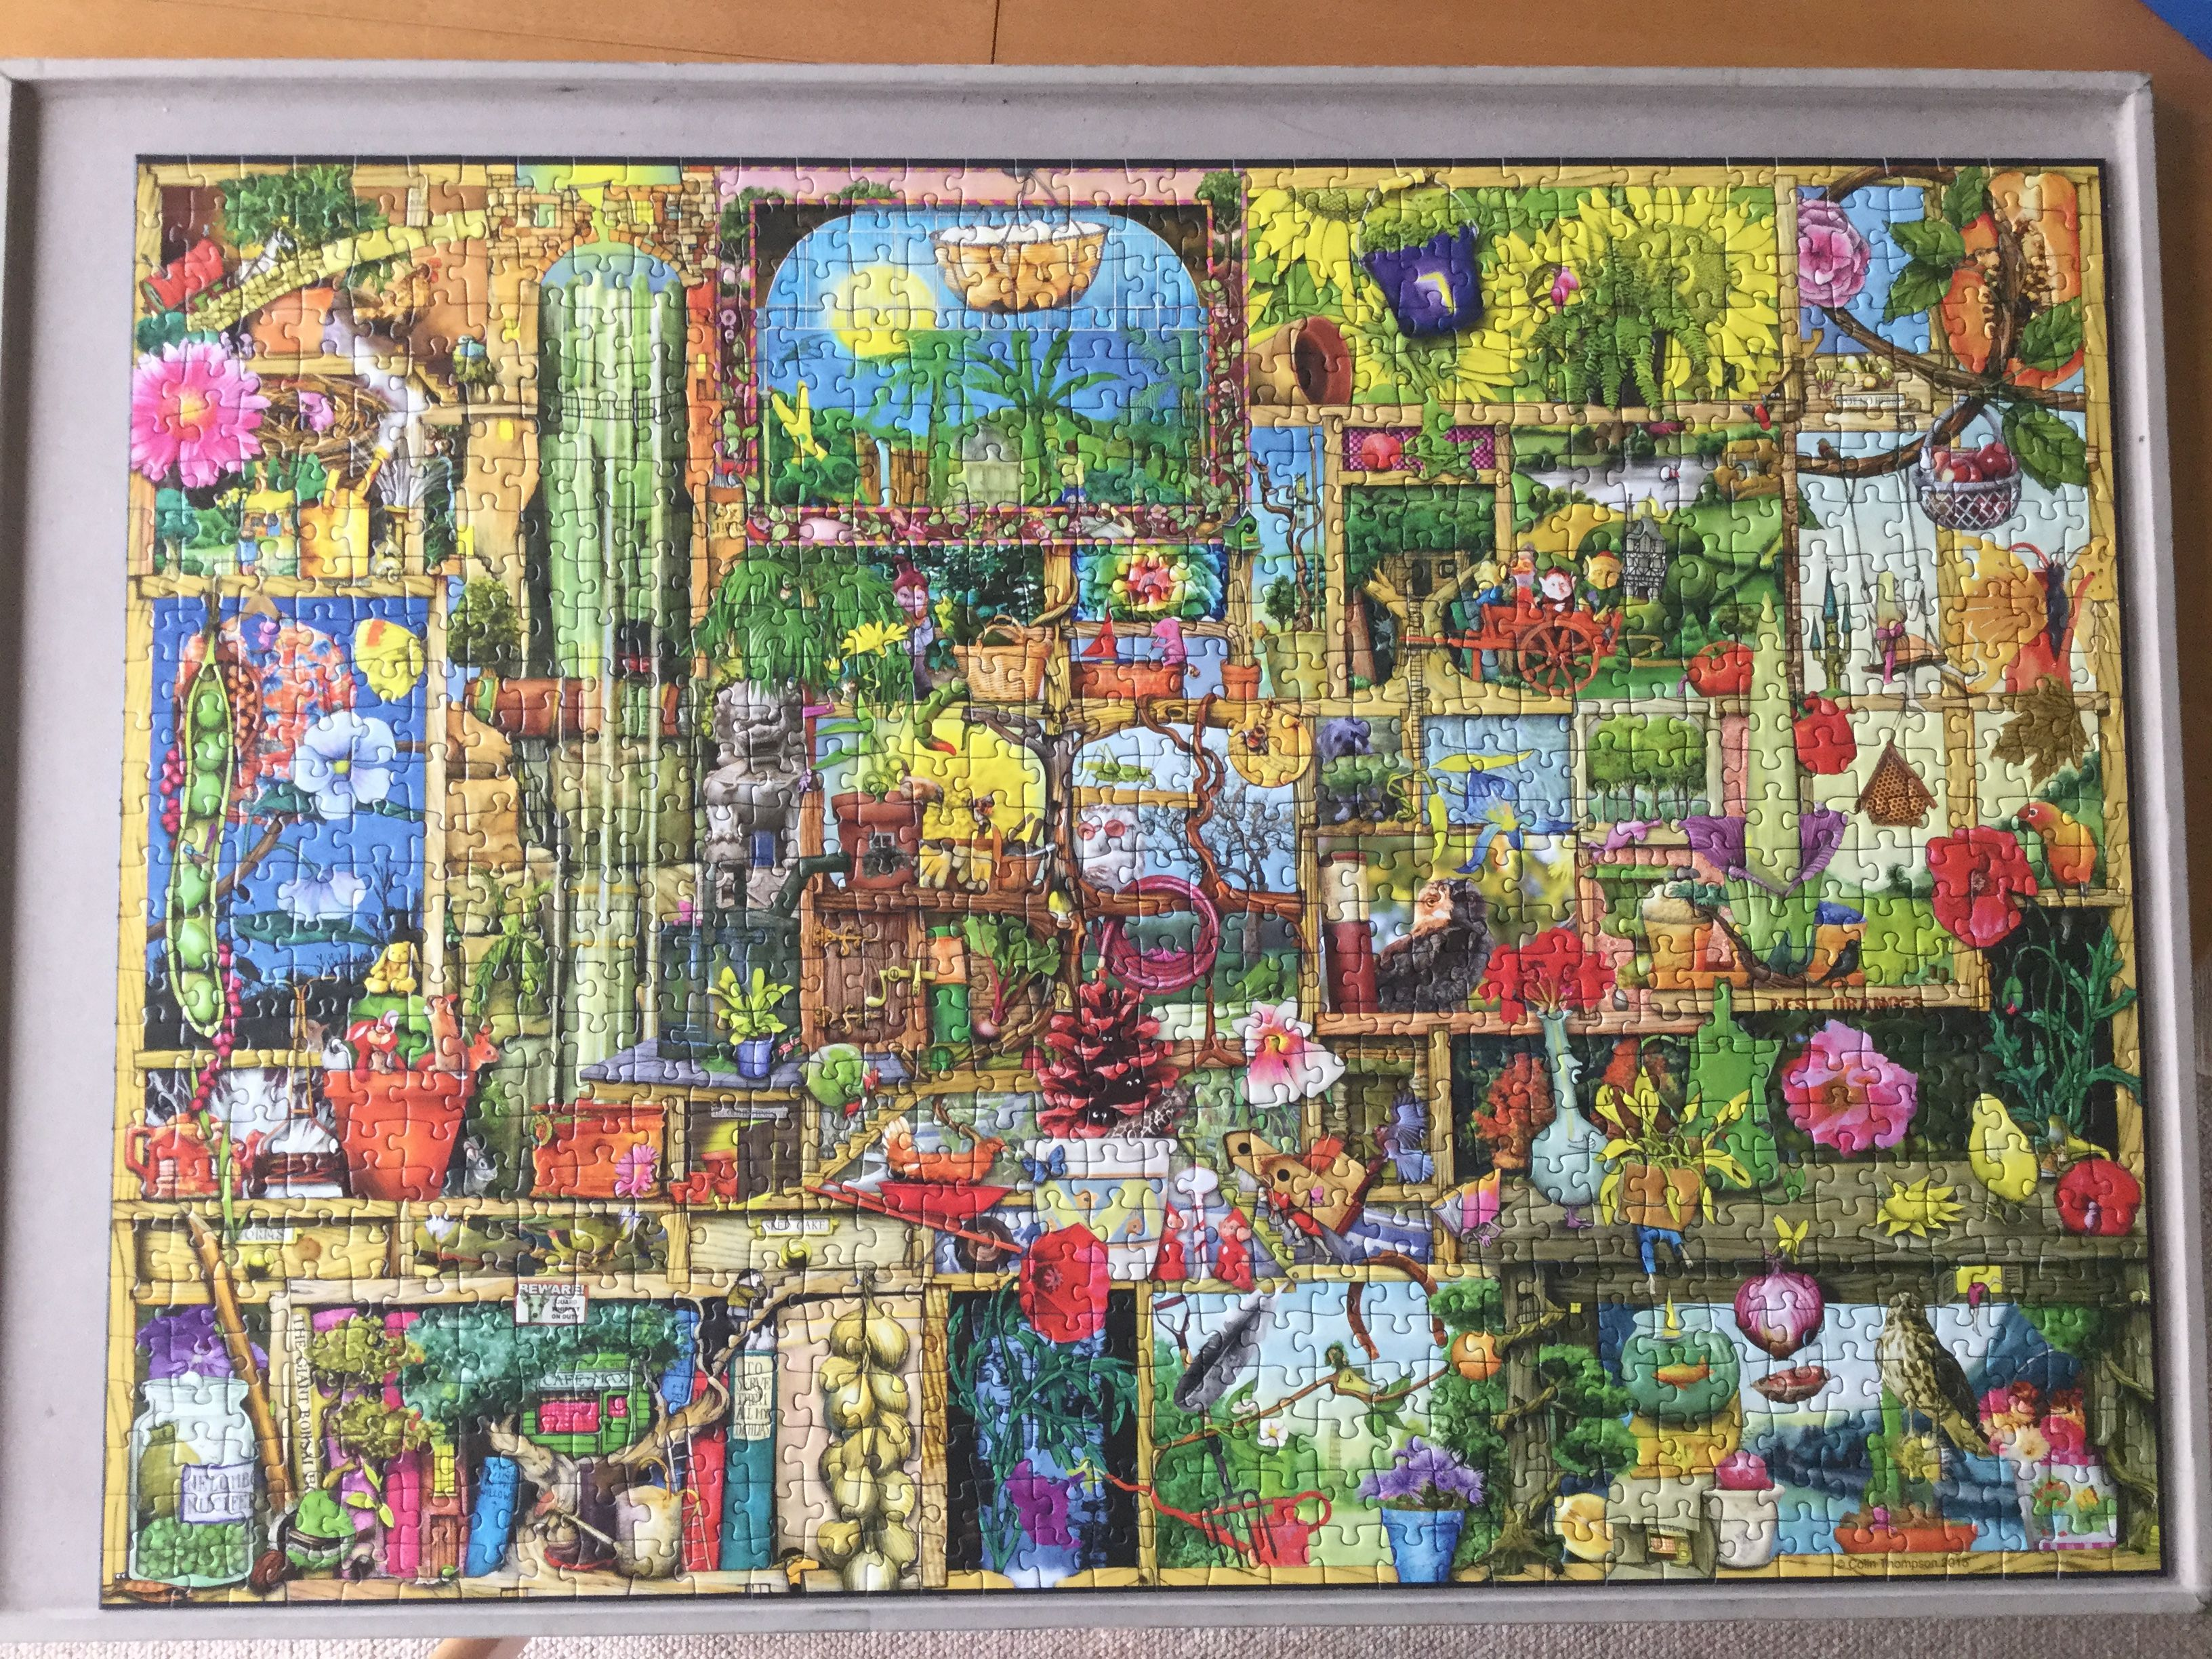 Pin on Jigsaw Puzzles I have completed